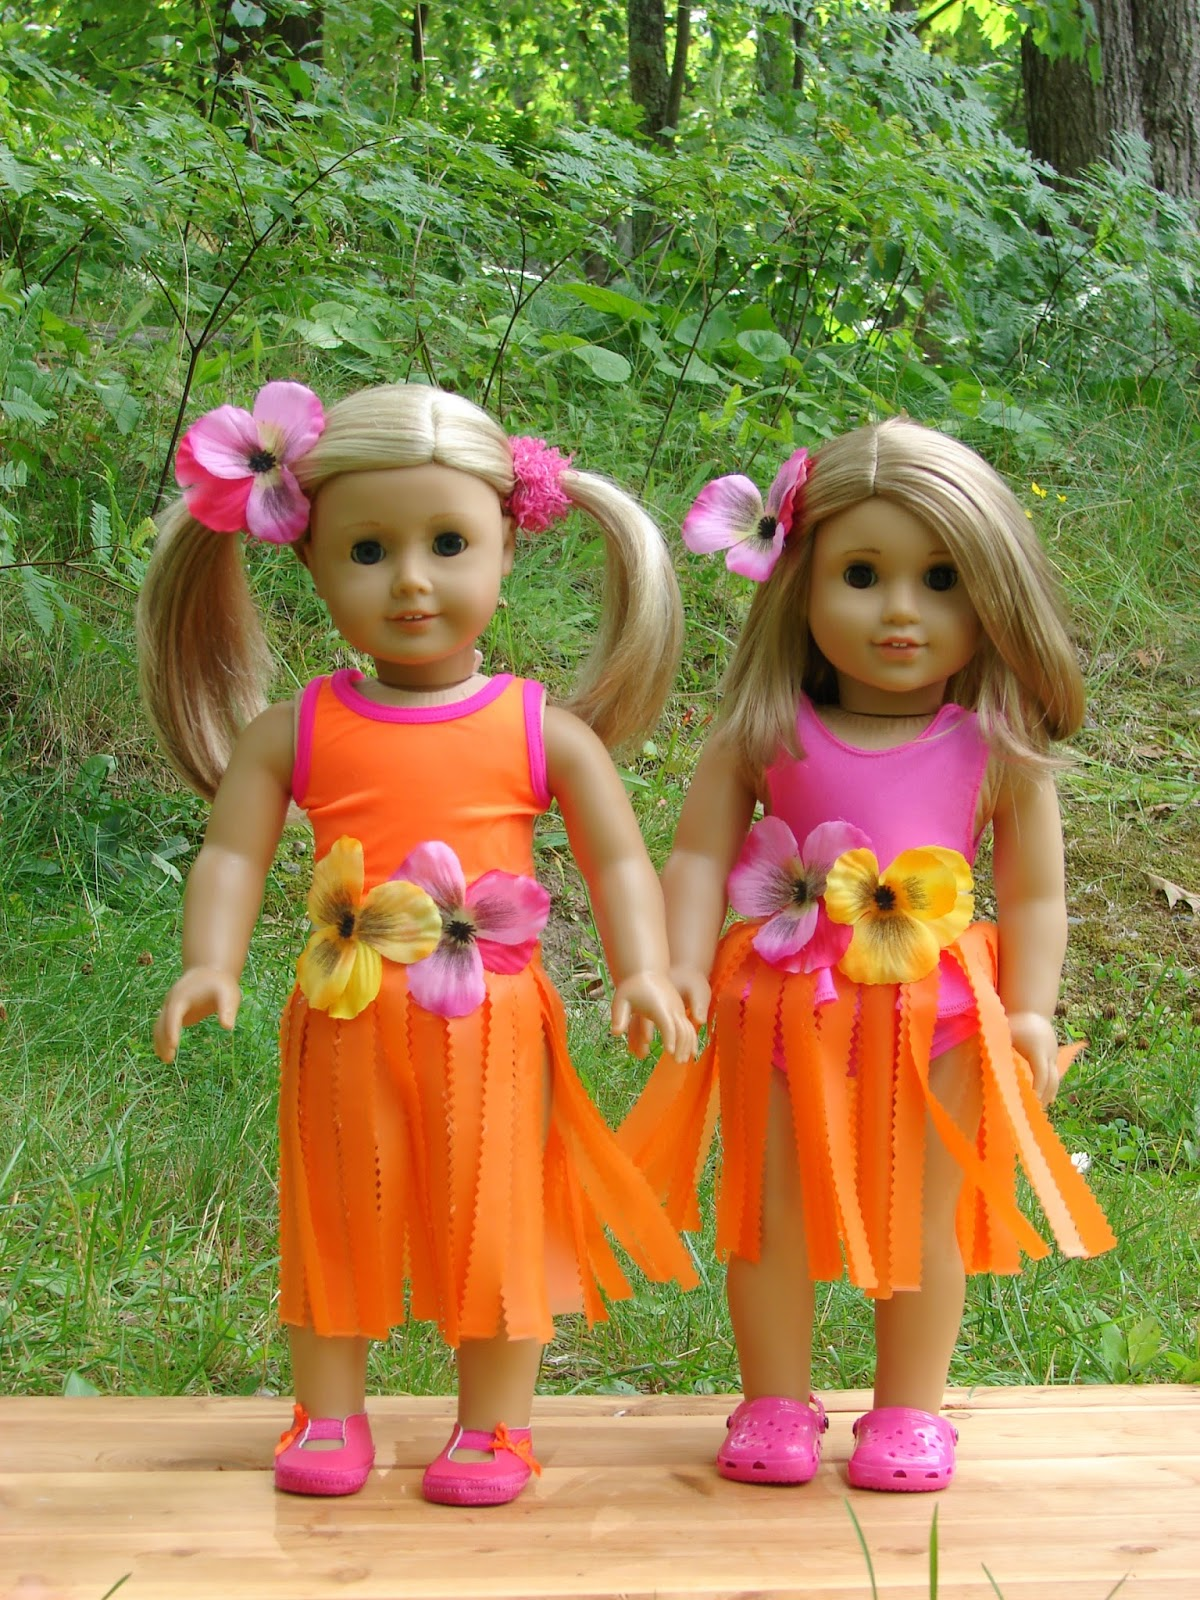 american girl doll play making doll hula skirts using plastic tableclothes. Black Bedroom Furniture Sets. Home Design Ideas